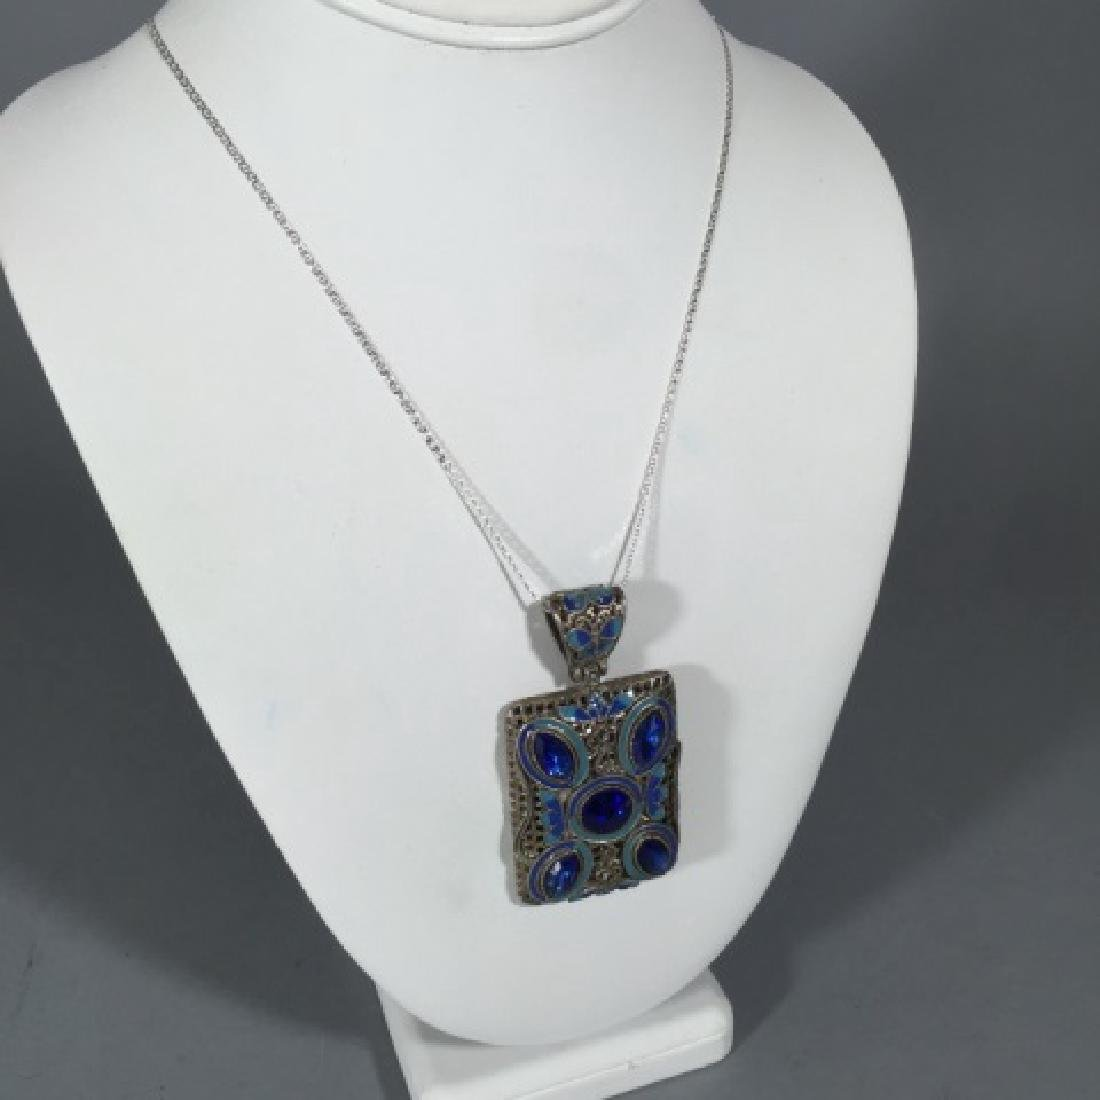 Sterling Necklace w Large Filigree Enamel Pendant - 2